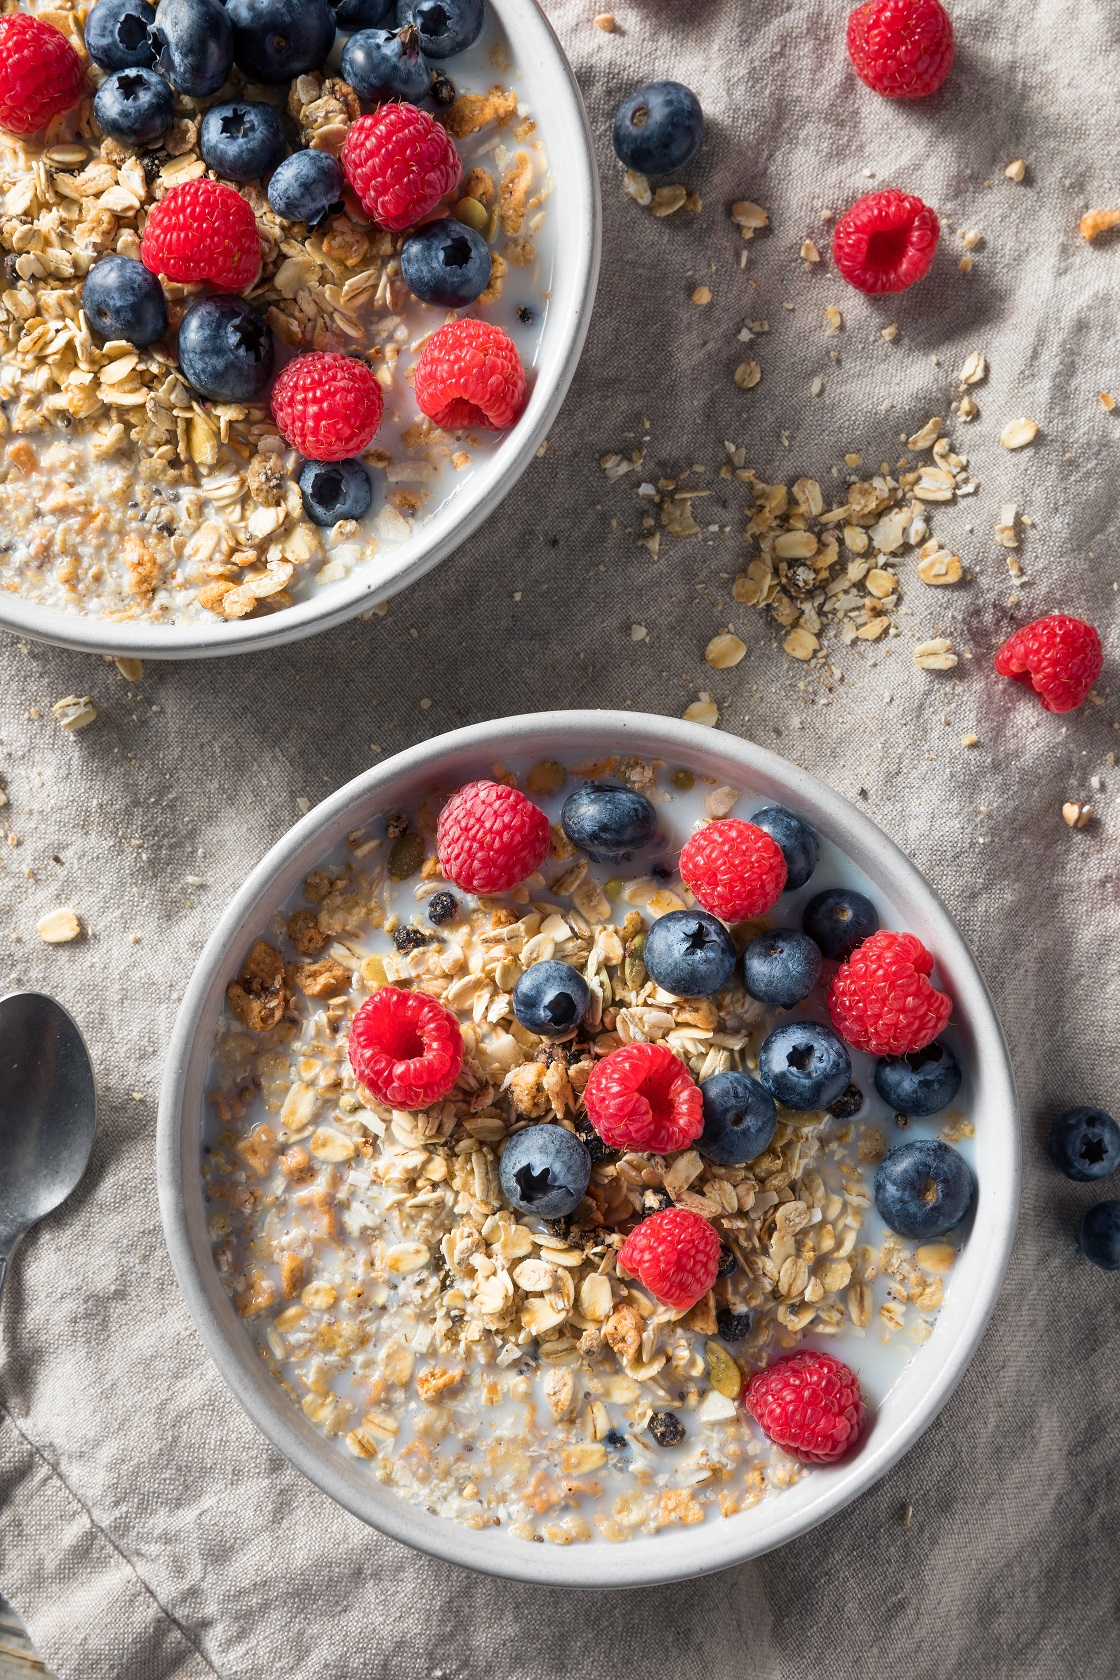 Canva Healthy Homemade Muesli Breakfast Cereal